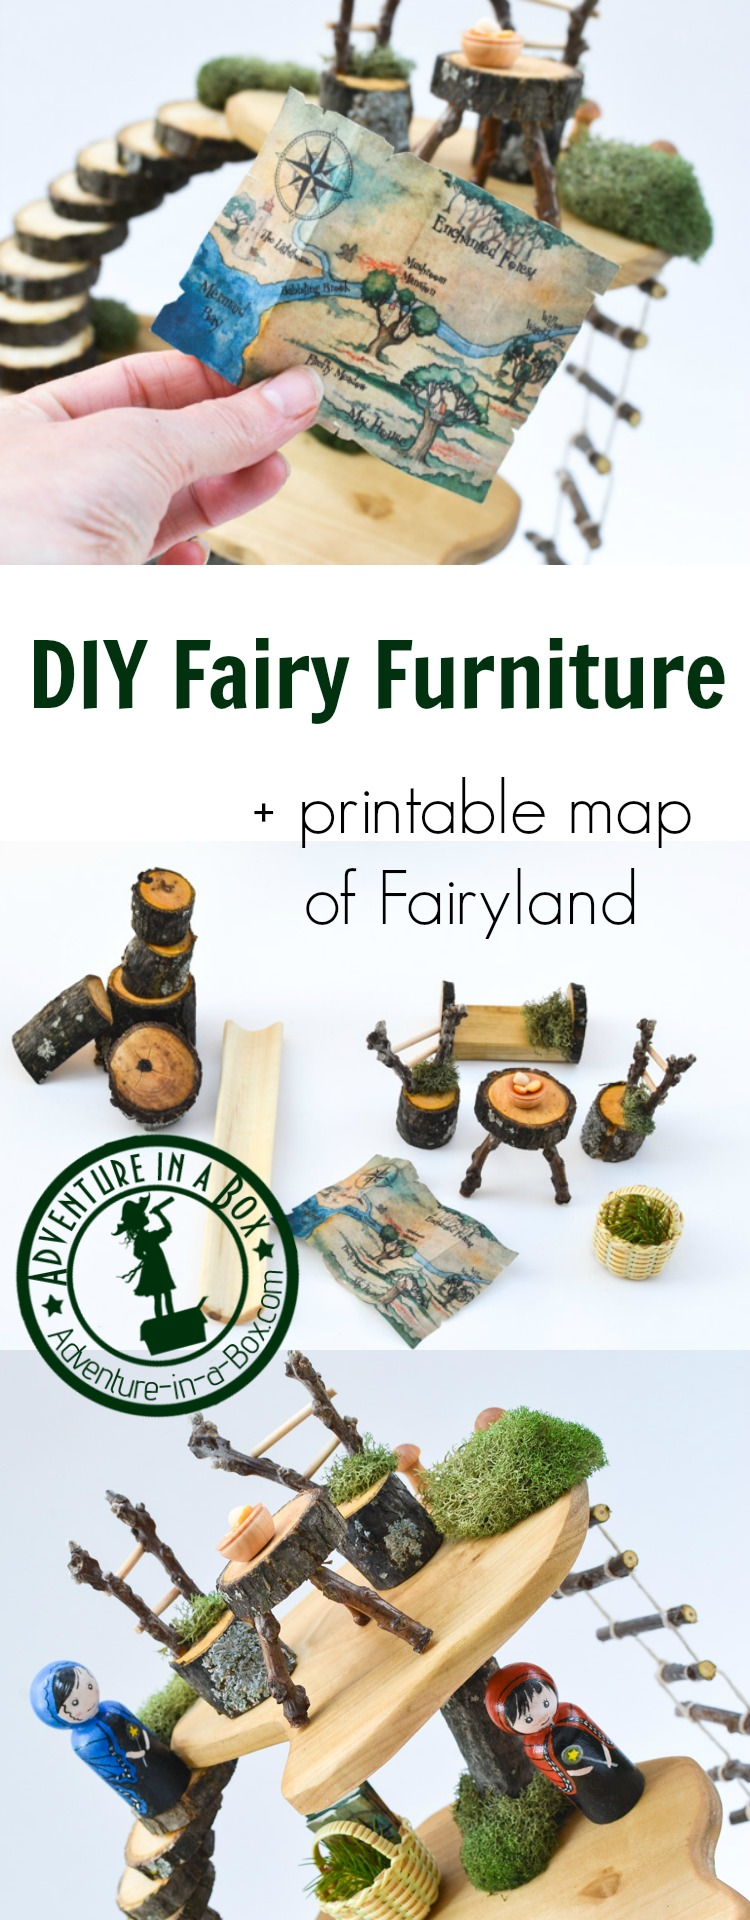 Printable Dollhouse Furniture Patterns Diy Project How To Make Fairy Furniture